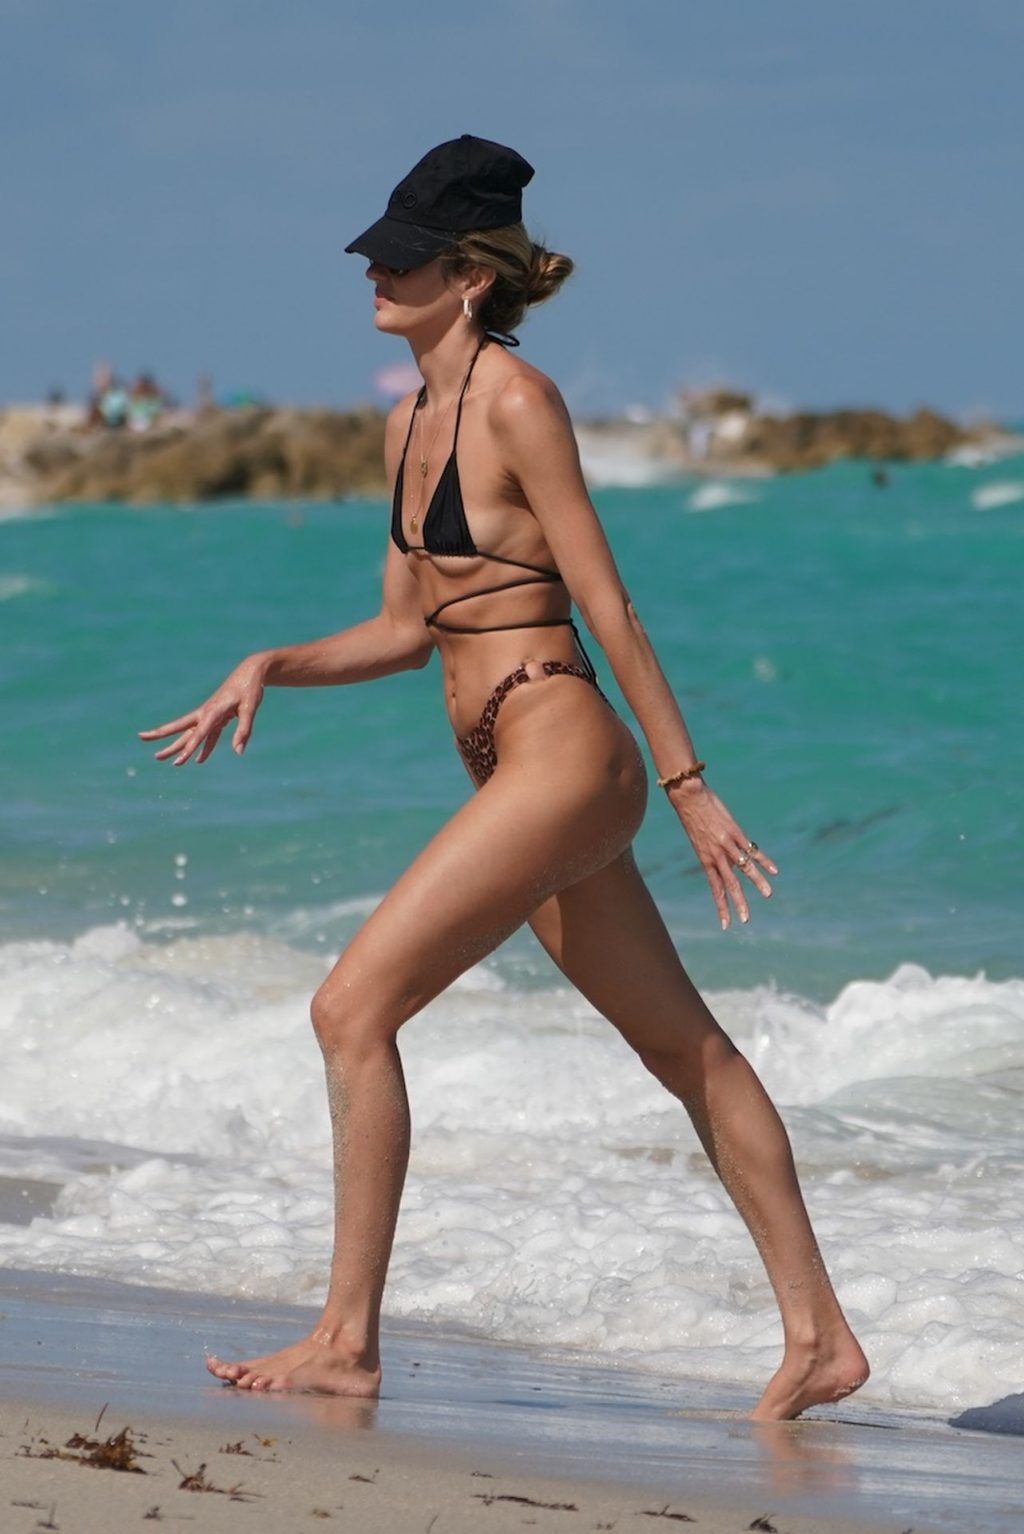 Candice Swanepoel Enjoys a Day at the Beach with Her Kids (37 Photos)